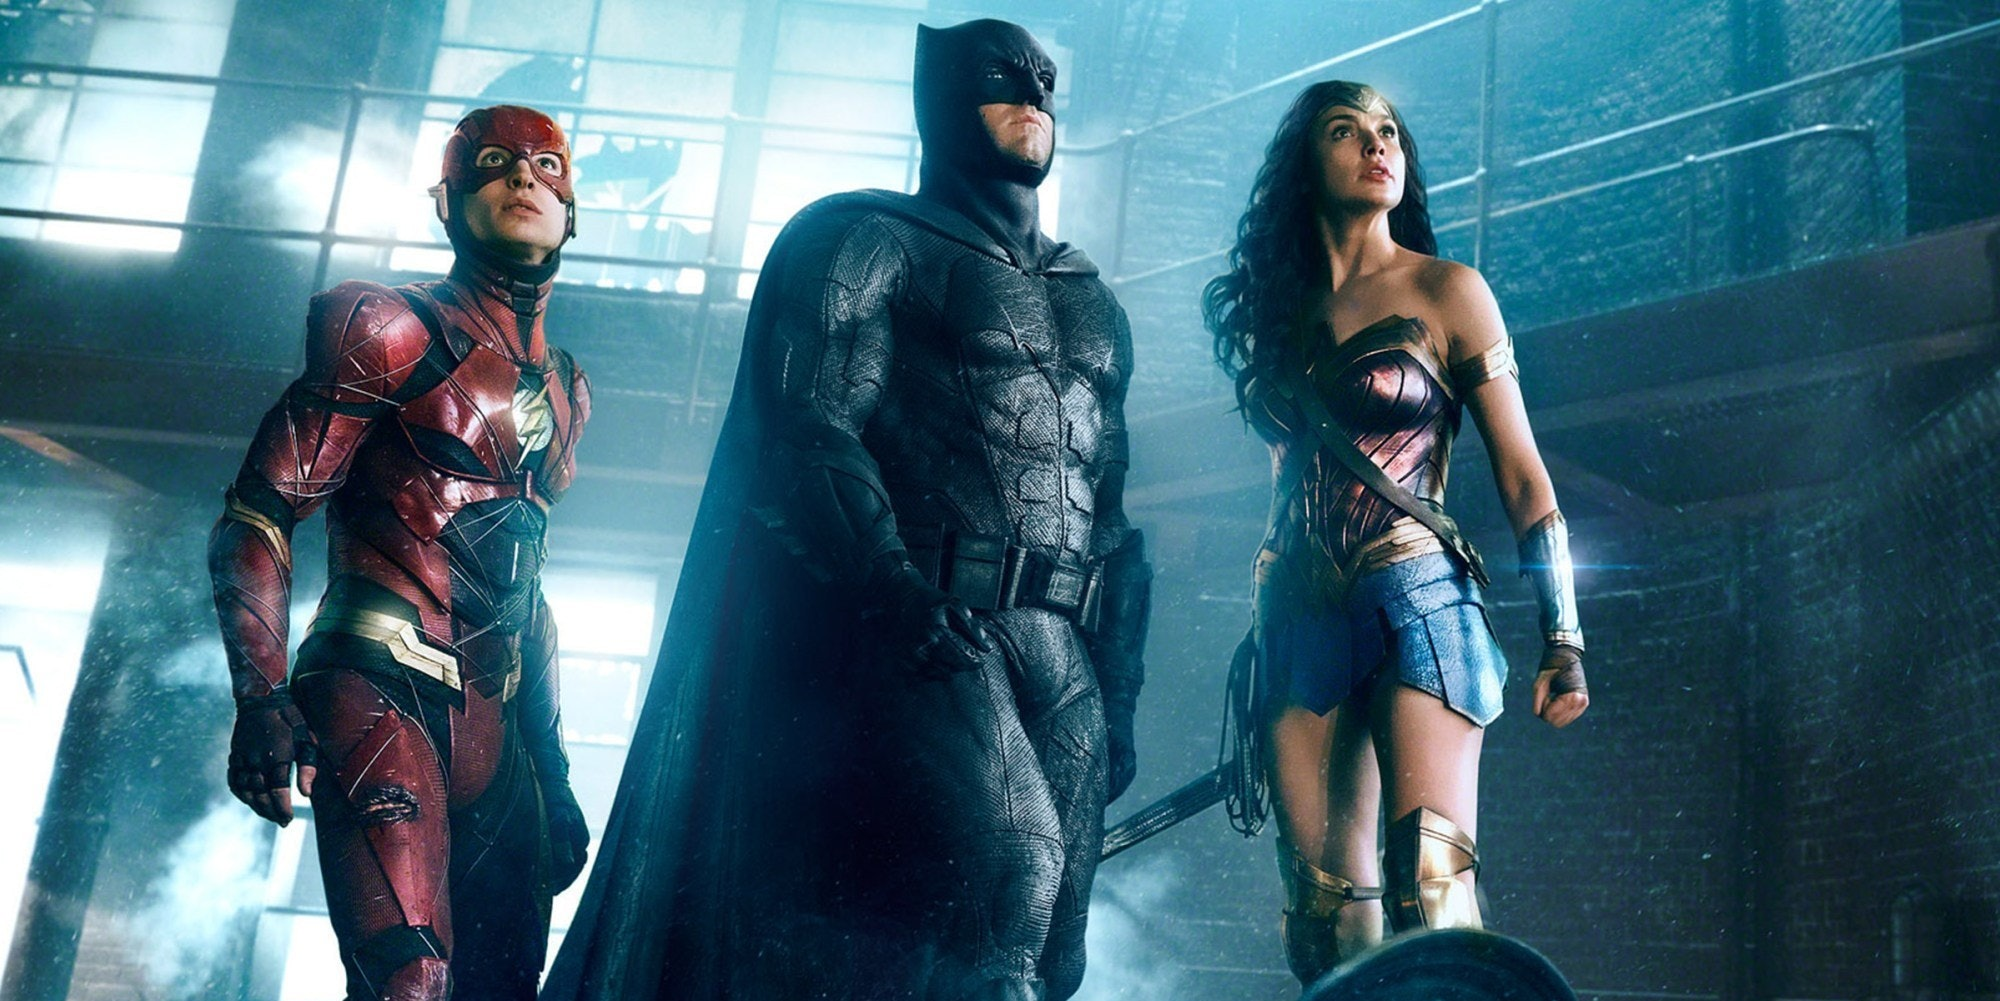 Justice League Entertainment Weekly